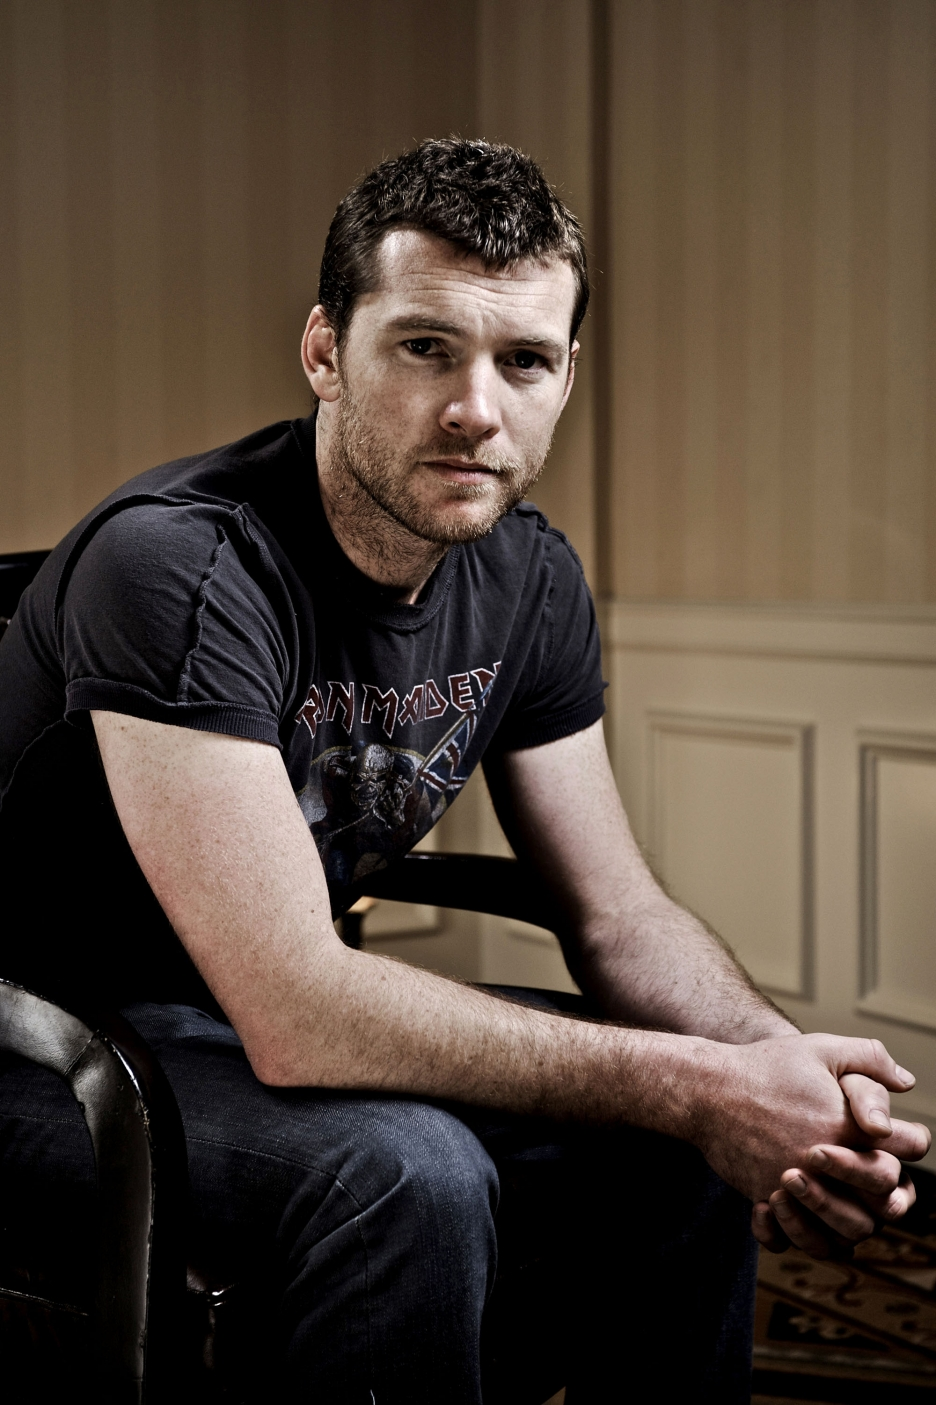 Latest Full Hd Cars Wallpapers Sam Worthington Hd Wallpapers High Definition Free